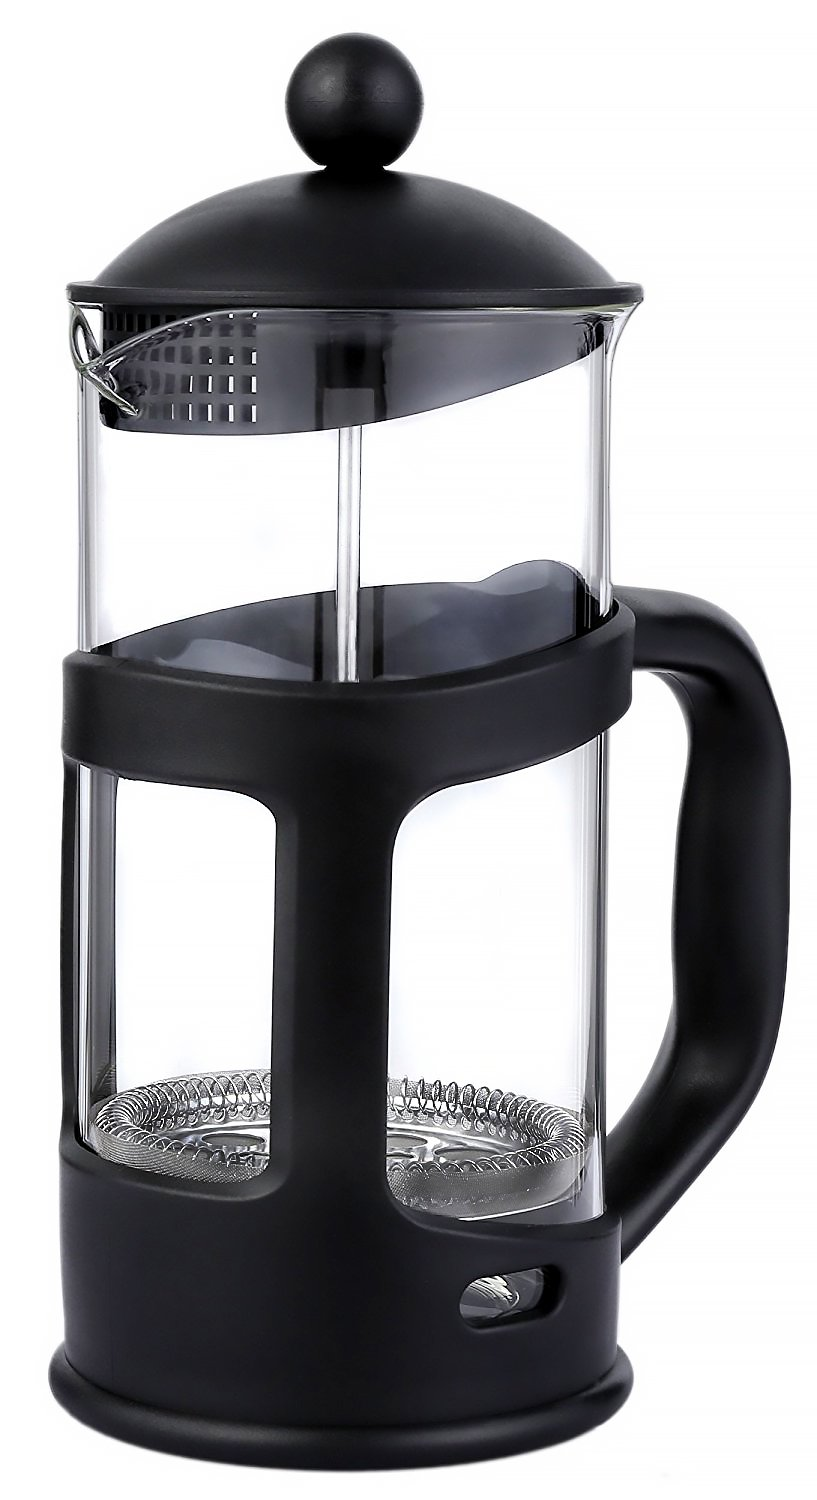 French Press Coffee Maker with Glass Carafe – Tea Maker for Home, Kitchen and Office - Heat Resistant Borosilicate Glass - 1 Liter/34 oz./8 Cup, 4 x 7 x 10 Inches